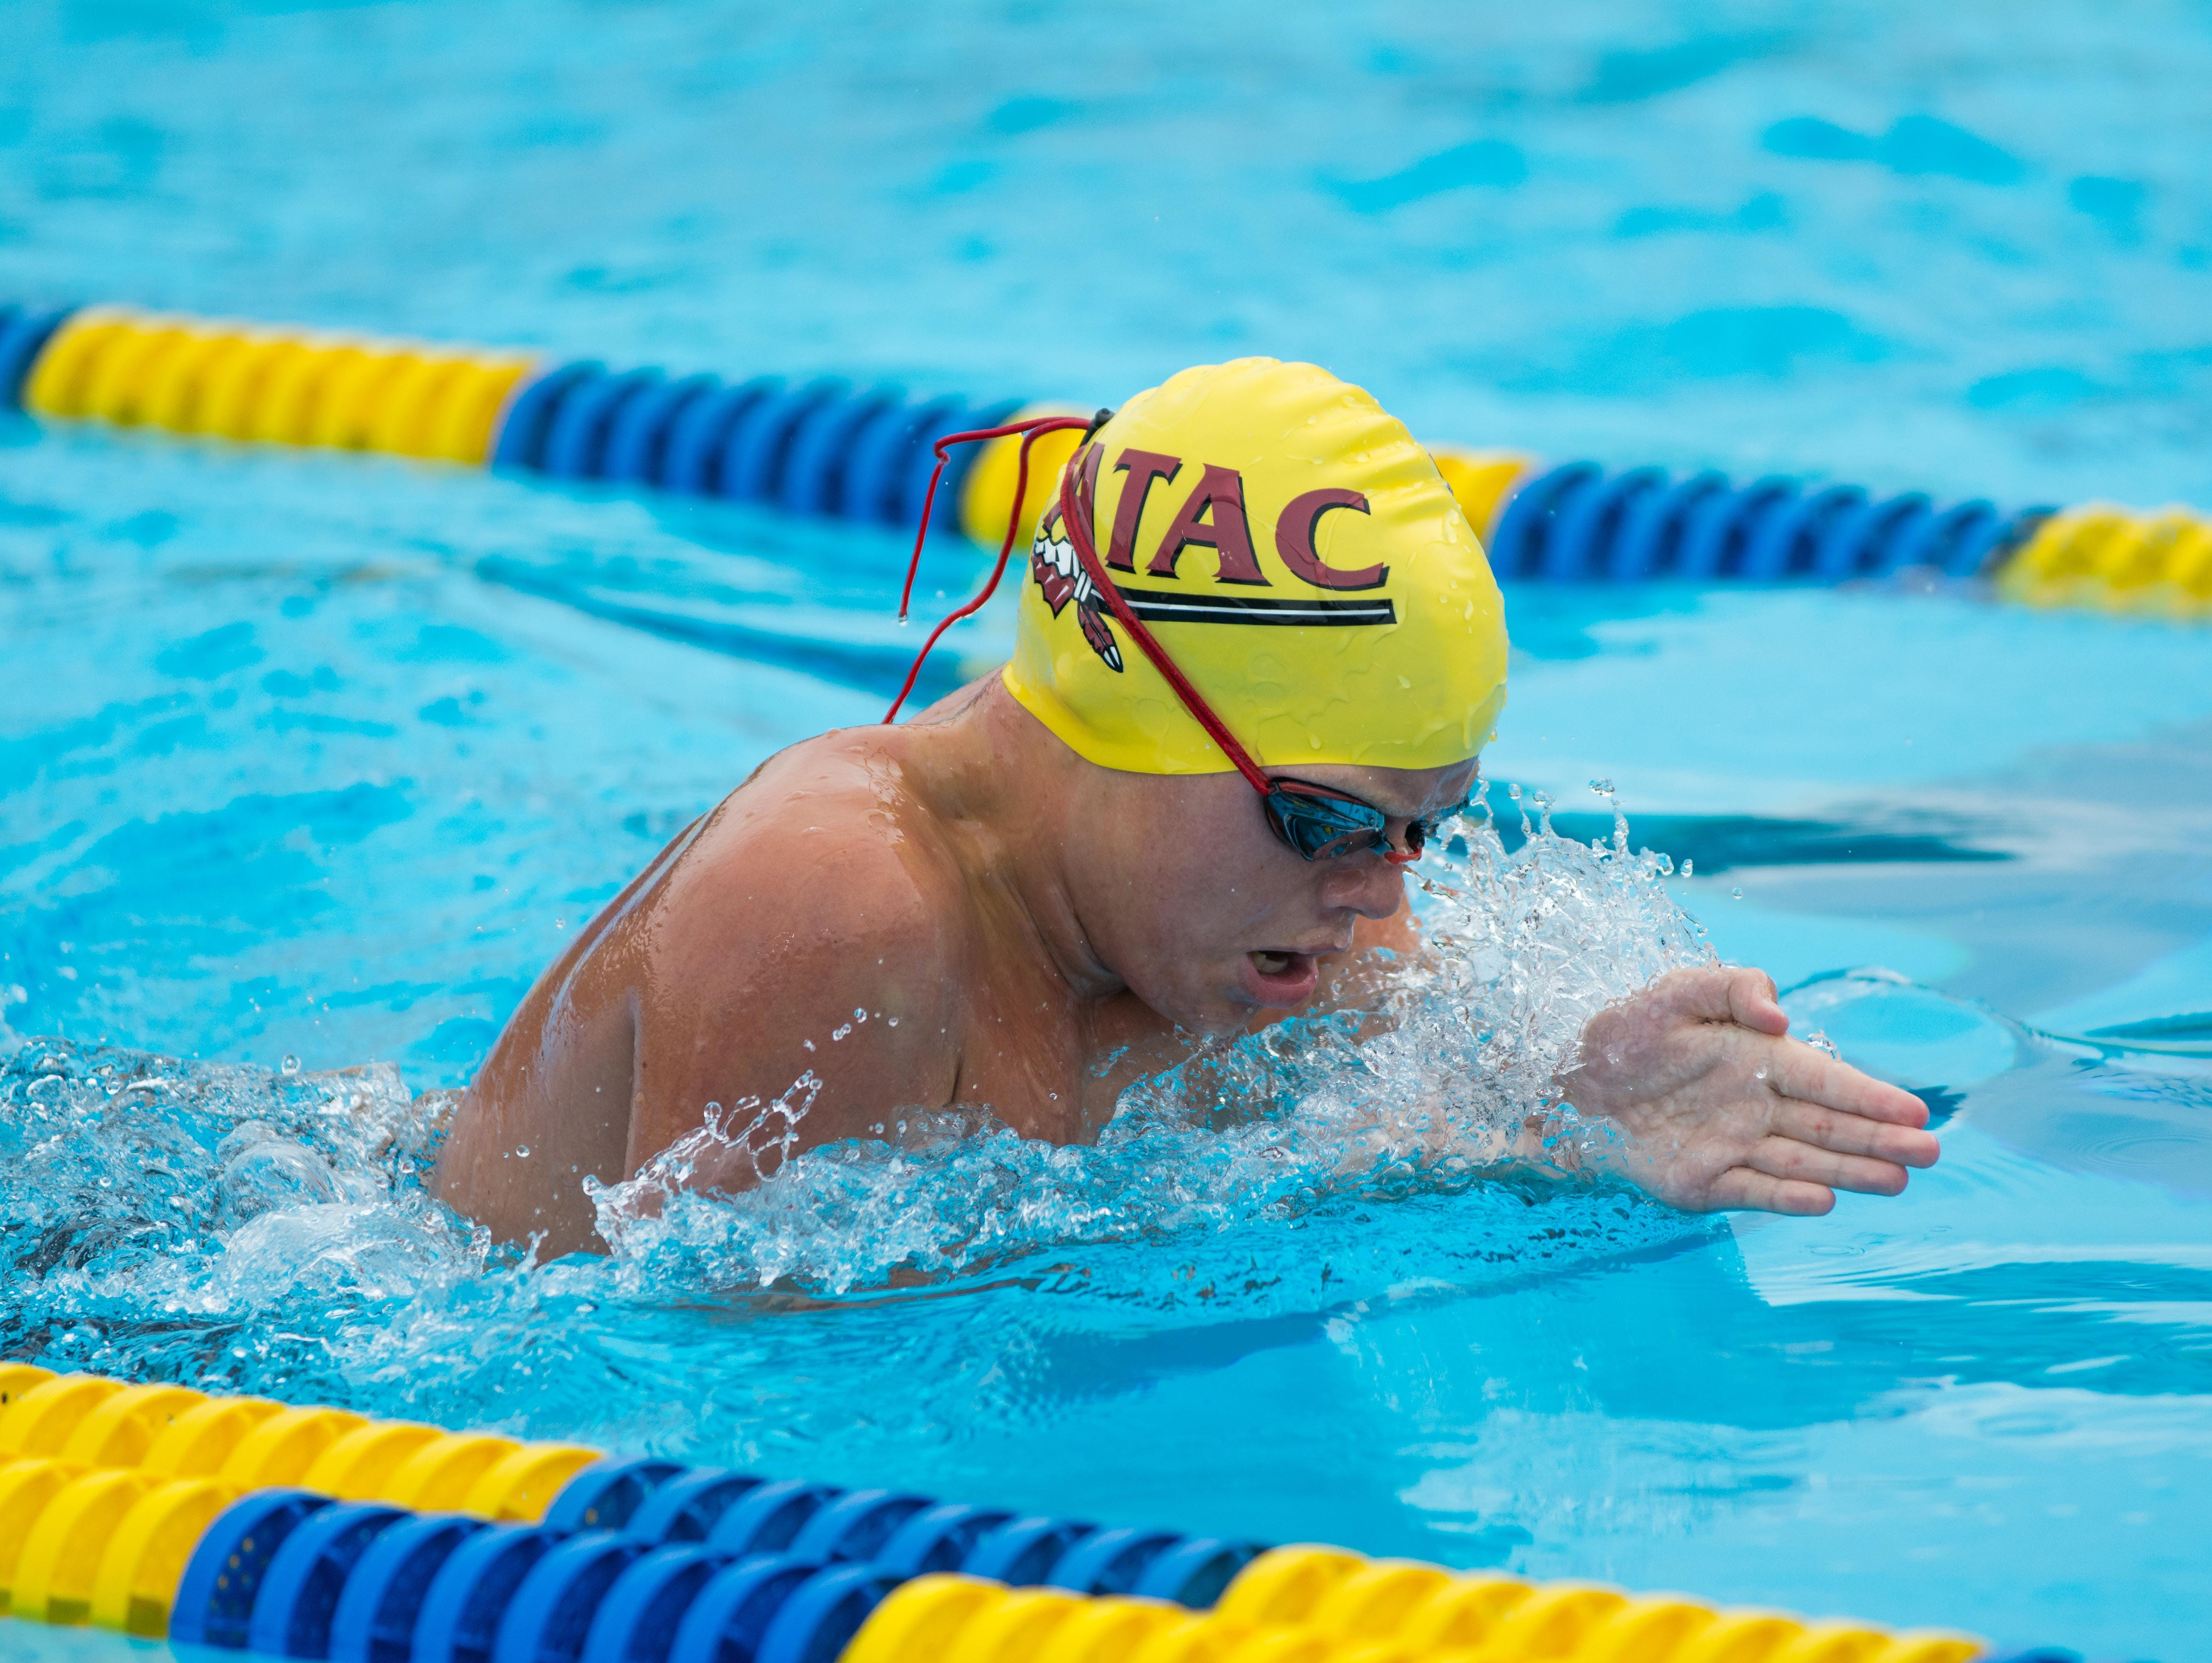 ATAC had a strong weekend at its long-course invitational. Nine ATAC swimmers have qualified for the upcoming U.S. Swimming Futures Championship at Purdue University in August.